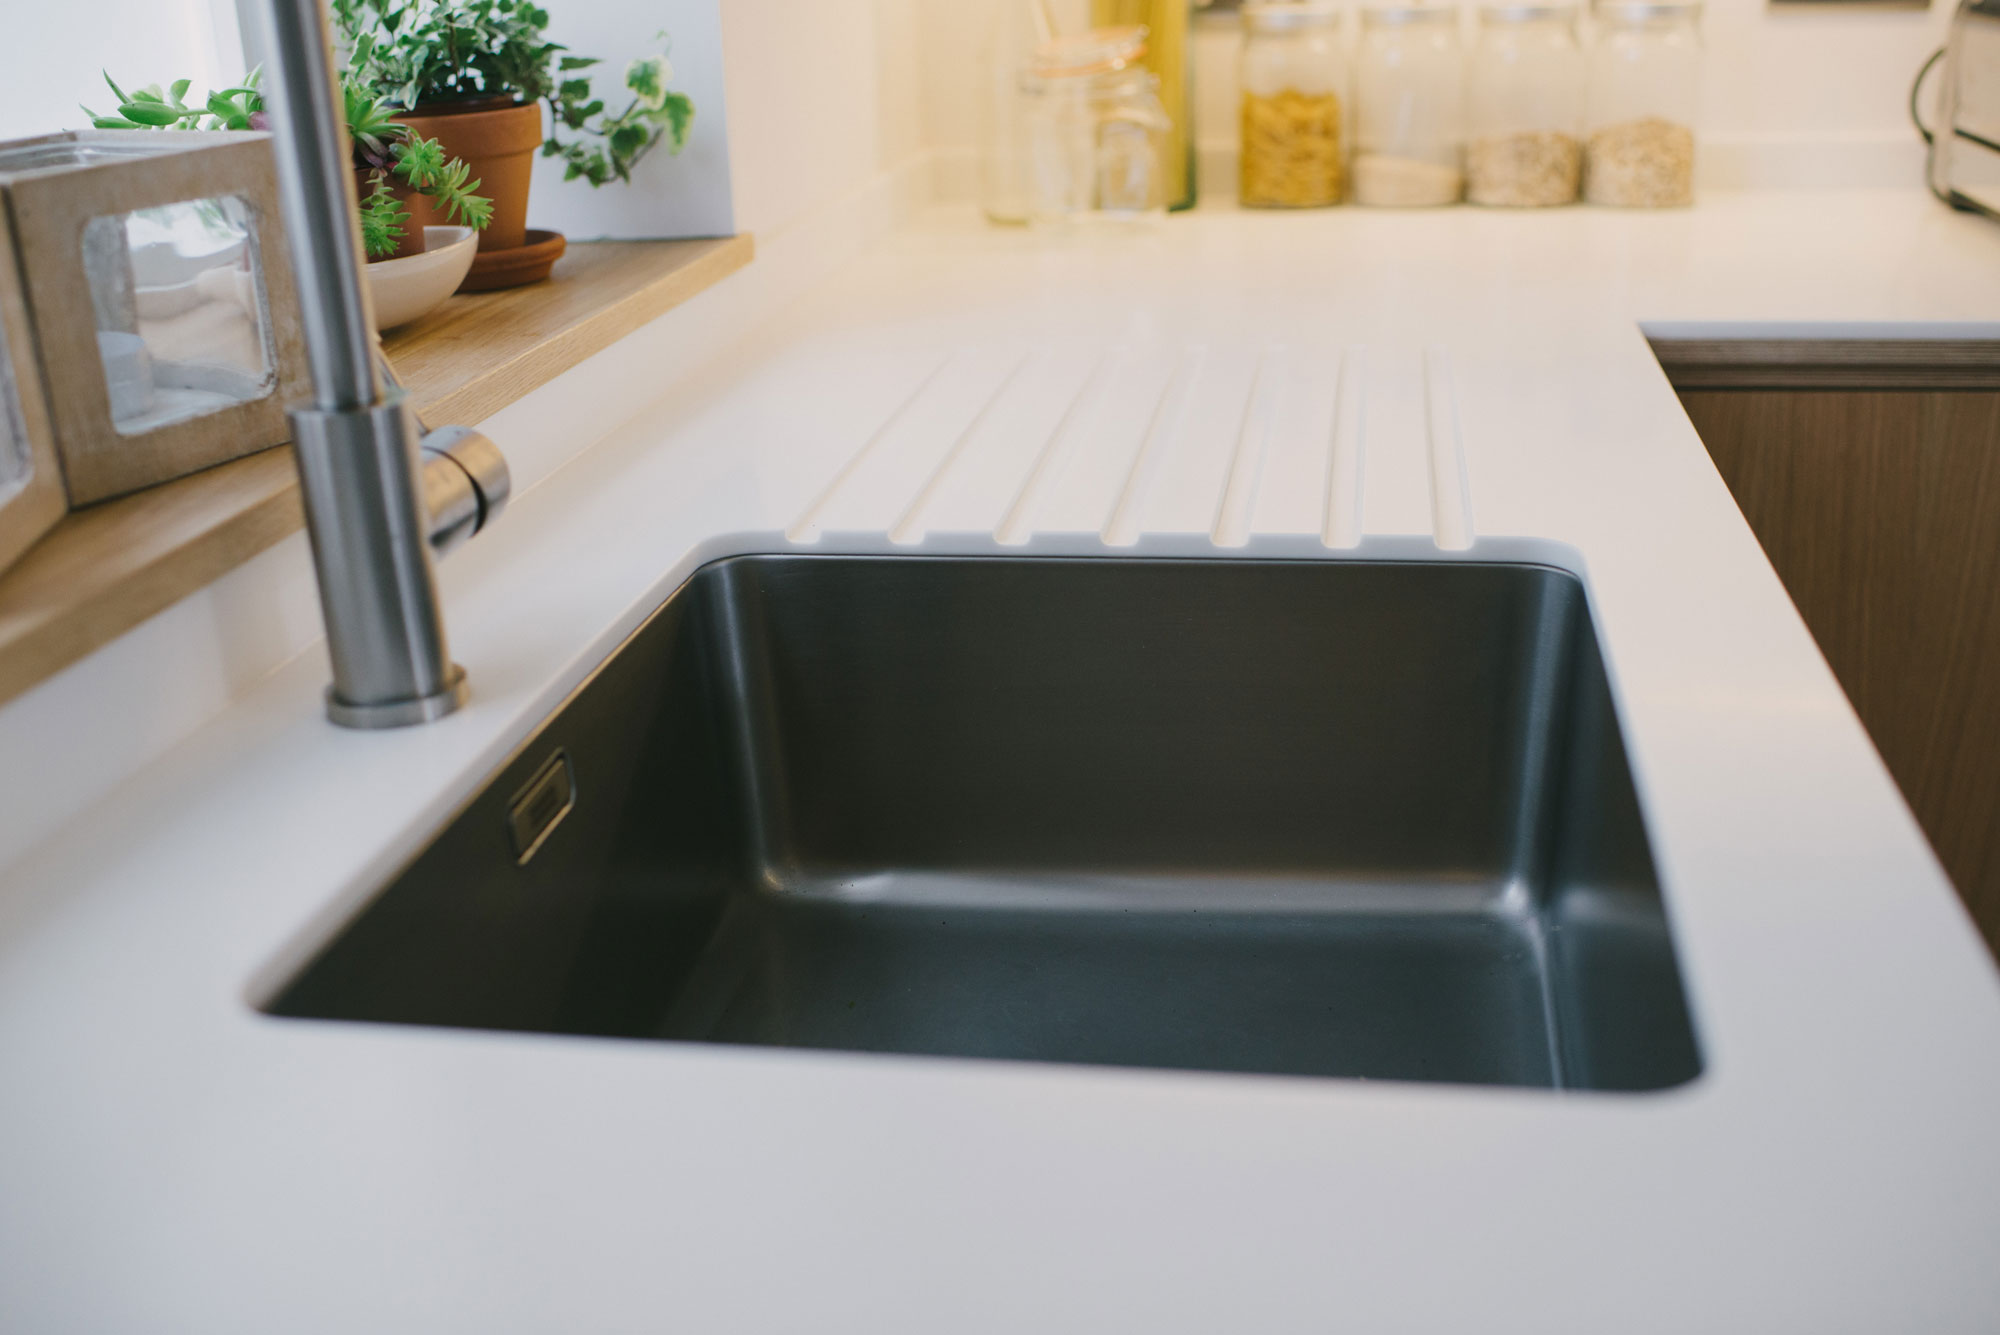 Corian worktop with stainless steel sink